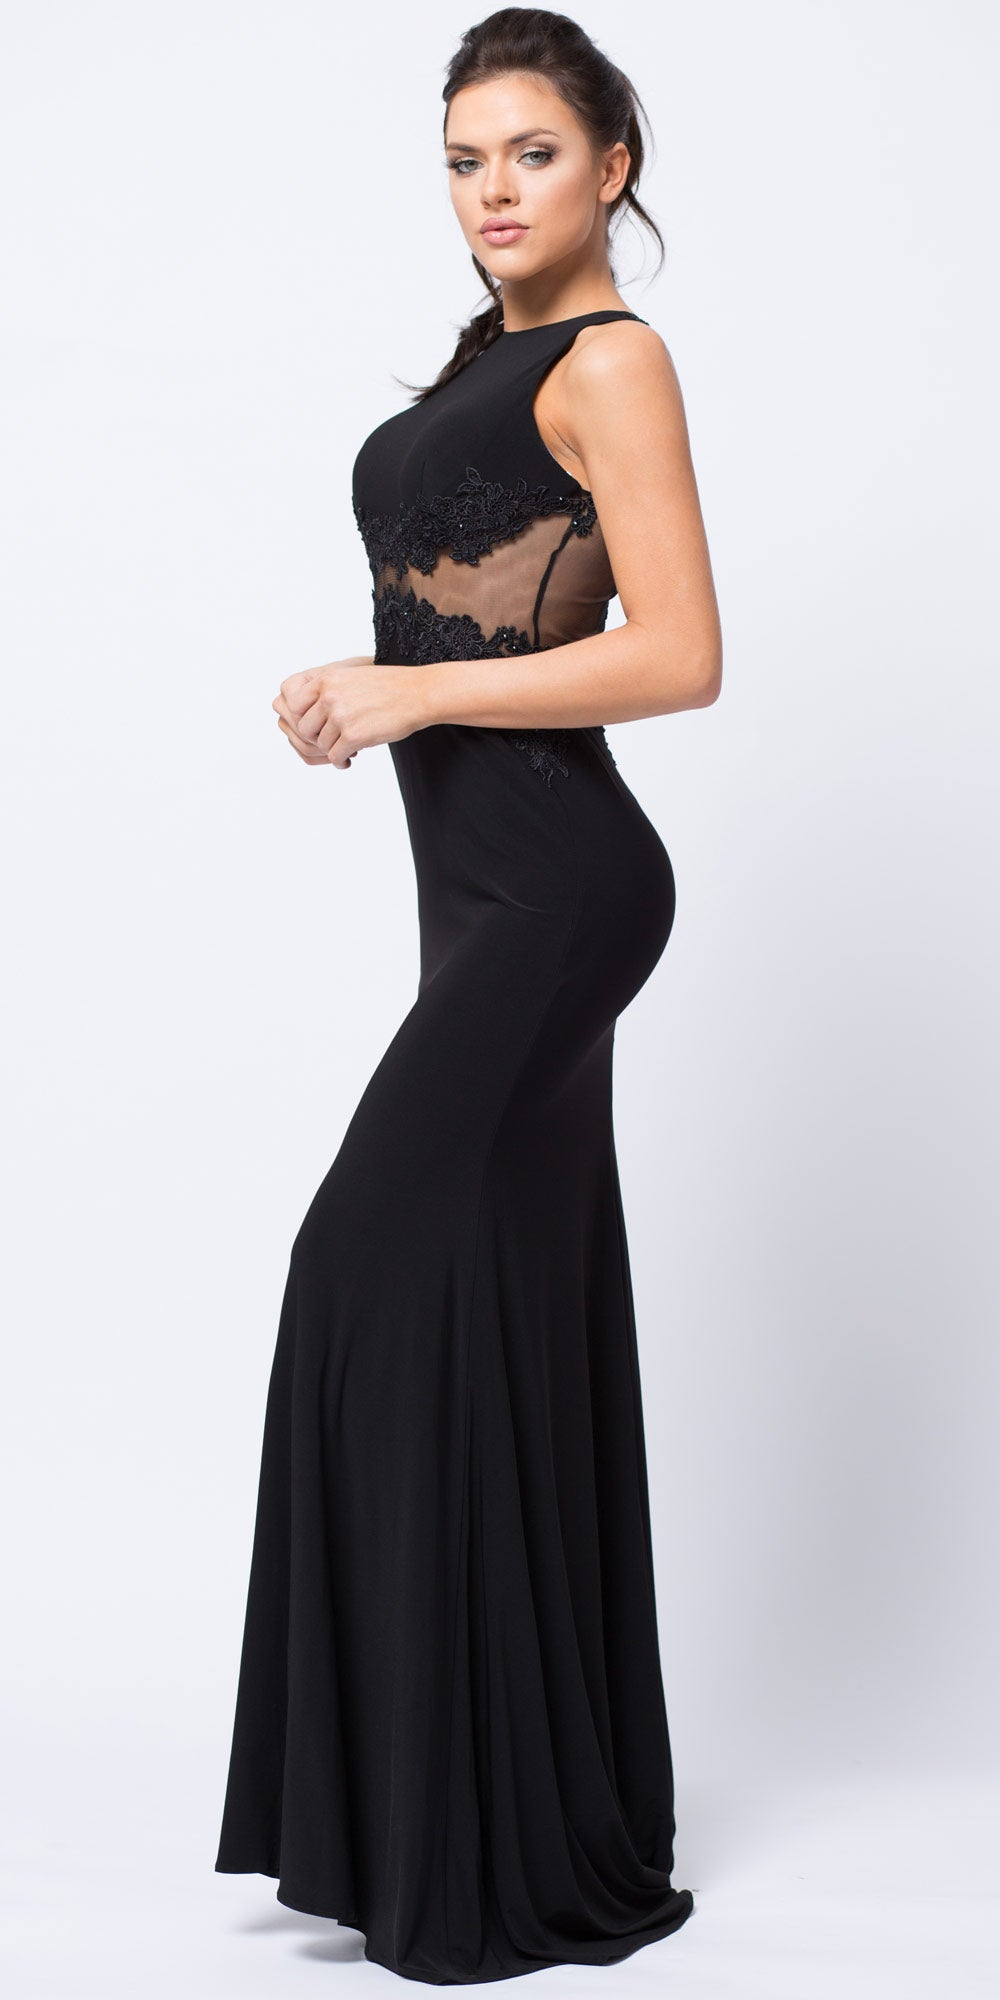 Image of Lace Accent Sheer Waist Long Formal Evening Jersey Dress in Black